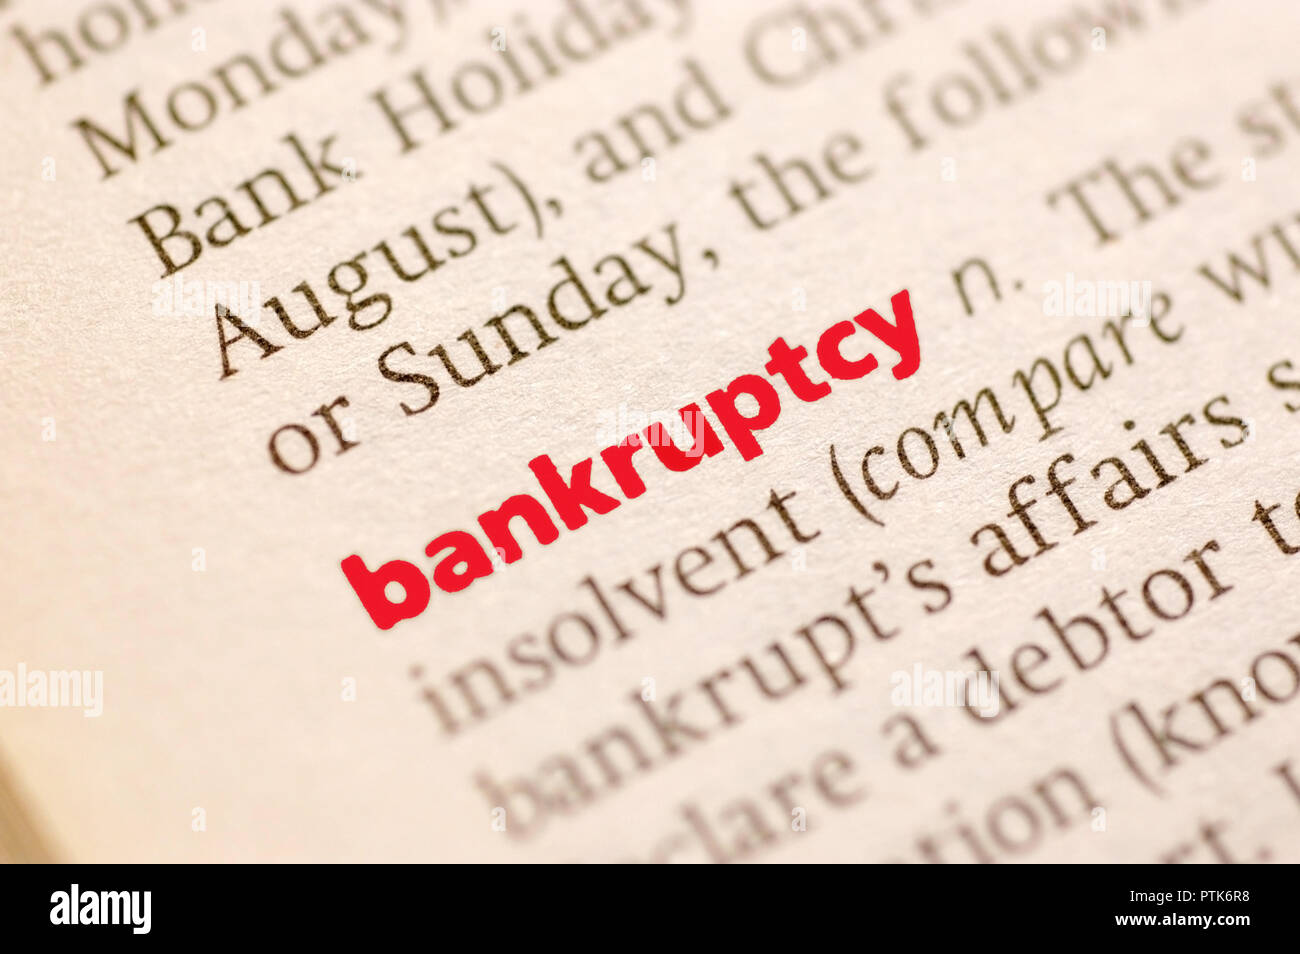 dictionary definition of bankruptcy. close up view, soft focus stock